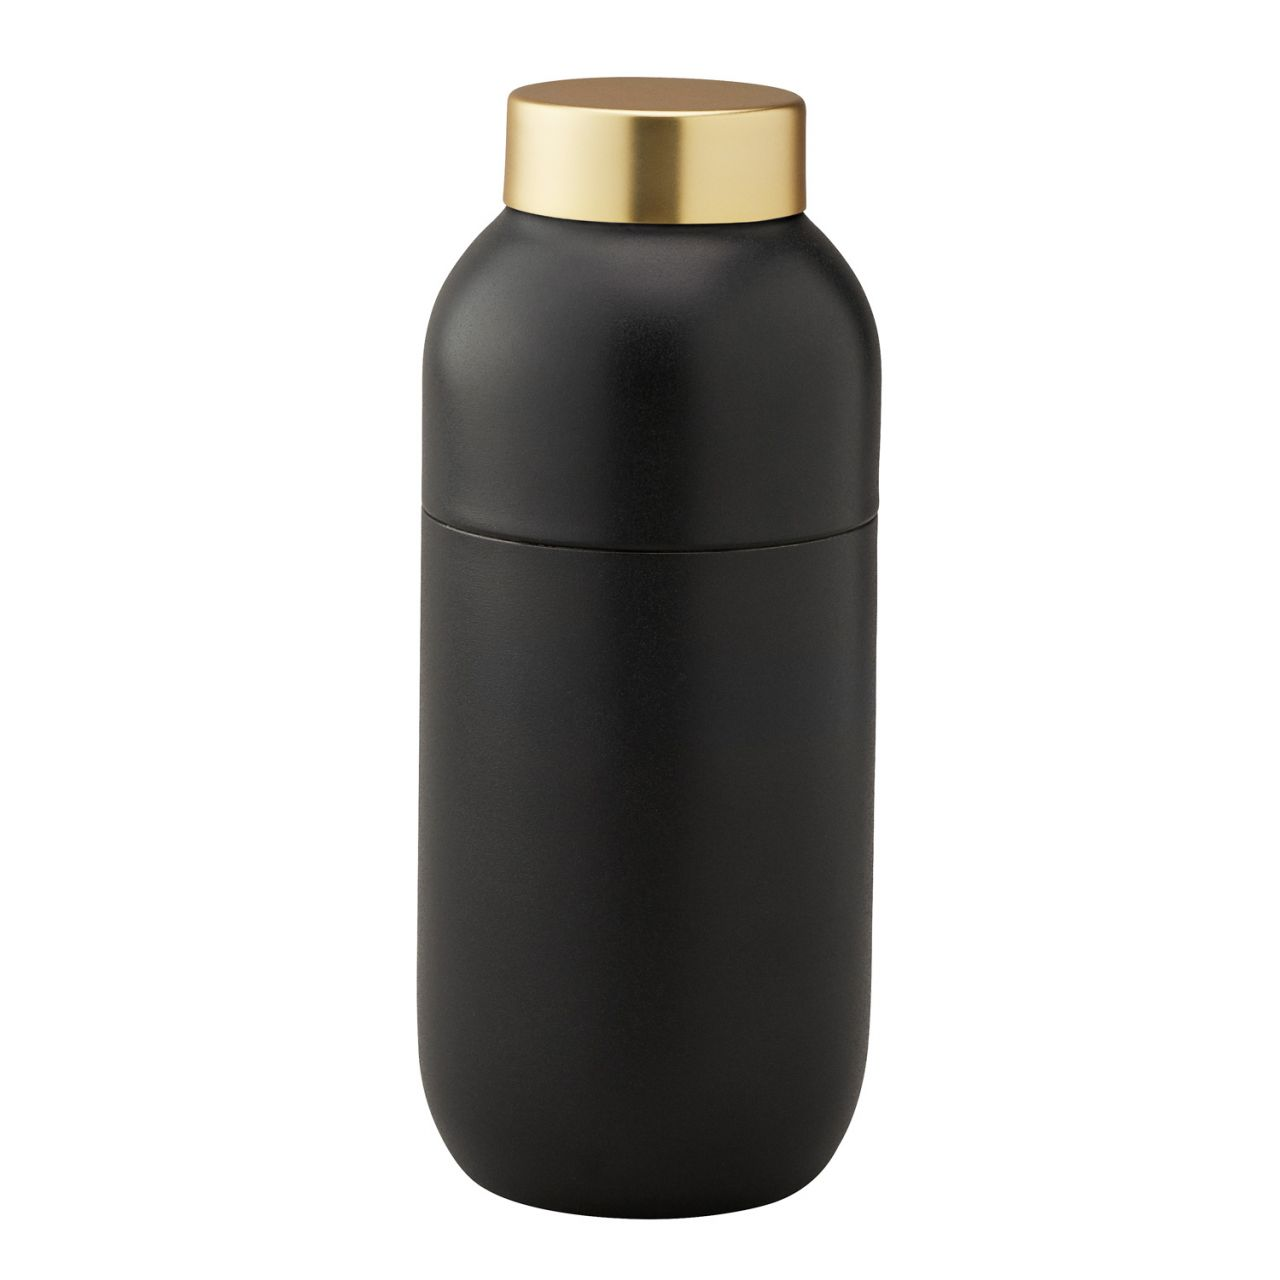 Stelton - Collar Cocktail Shaker mit Messbecher 424